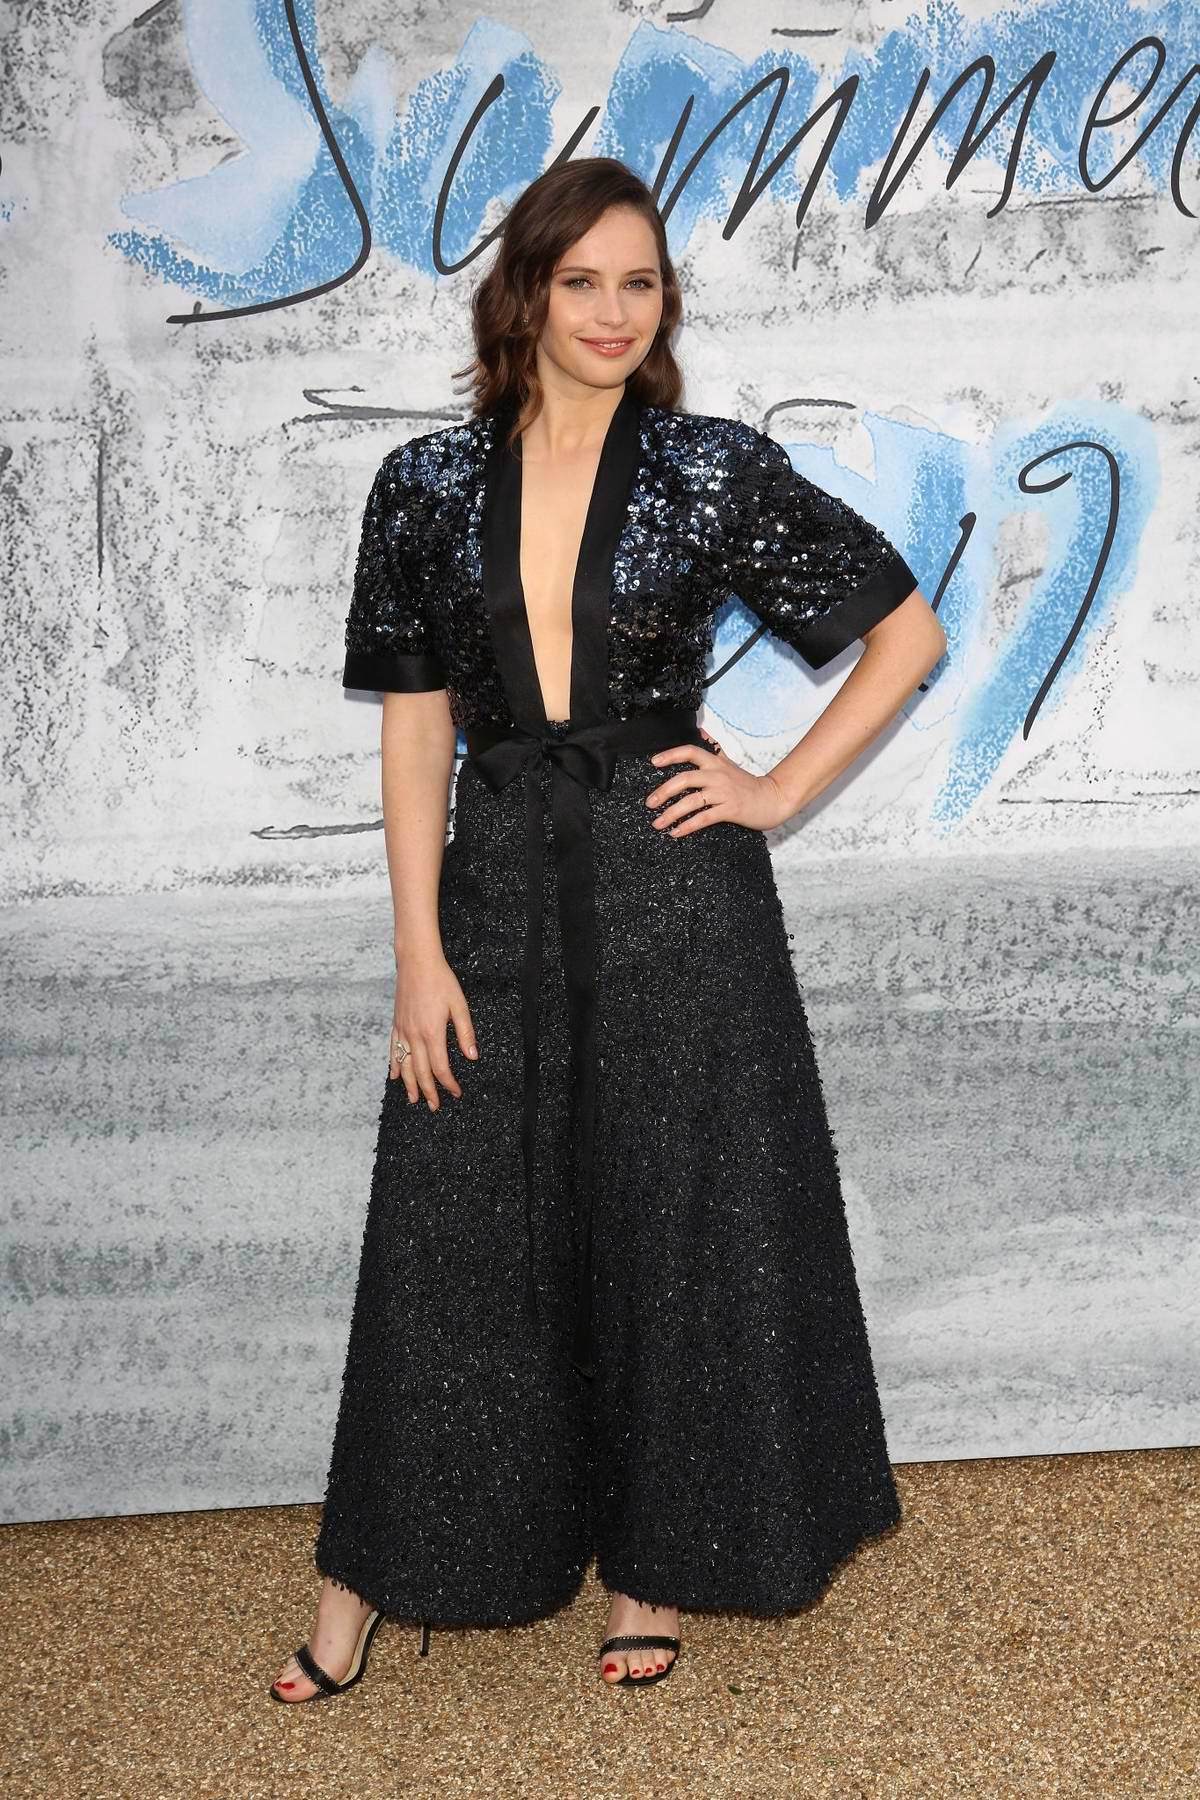 Felicity Jones attends The Summer Party 2019 at Serpentine Gallery at Kensington Gardens in London, UK